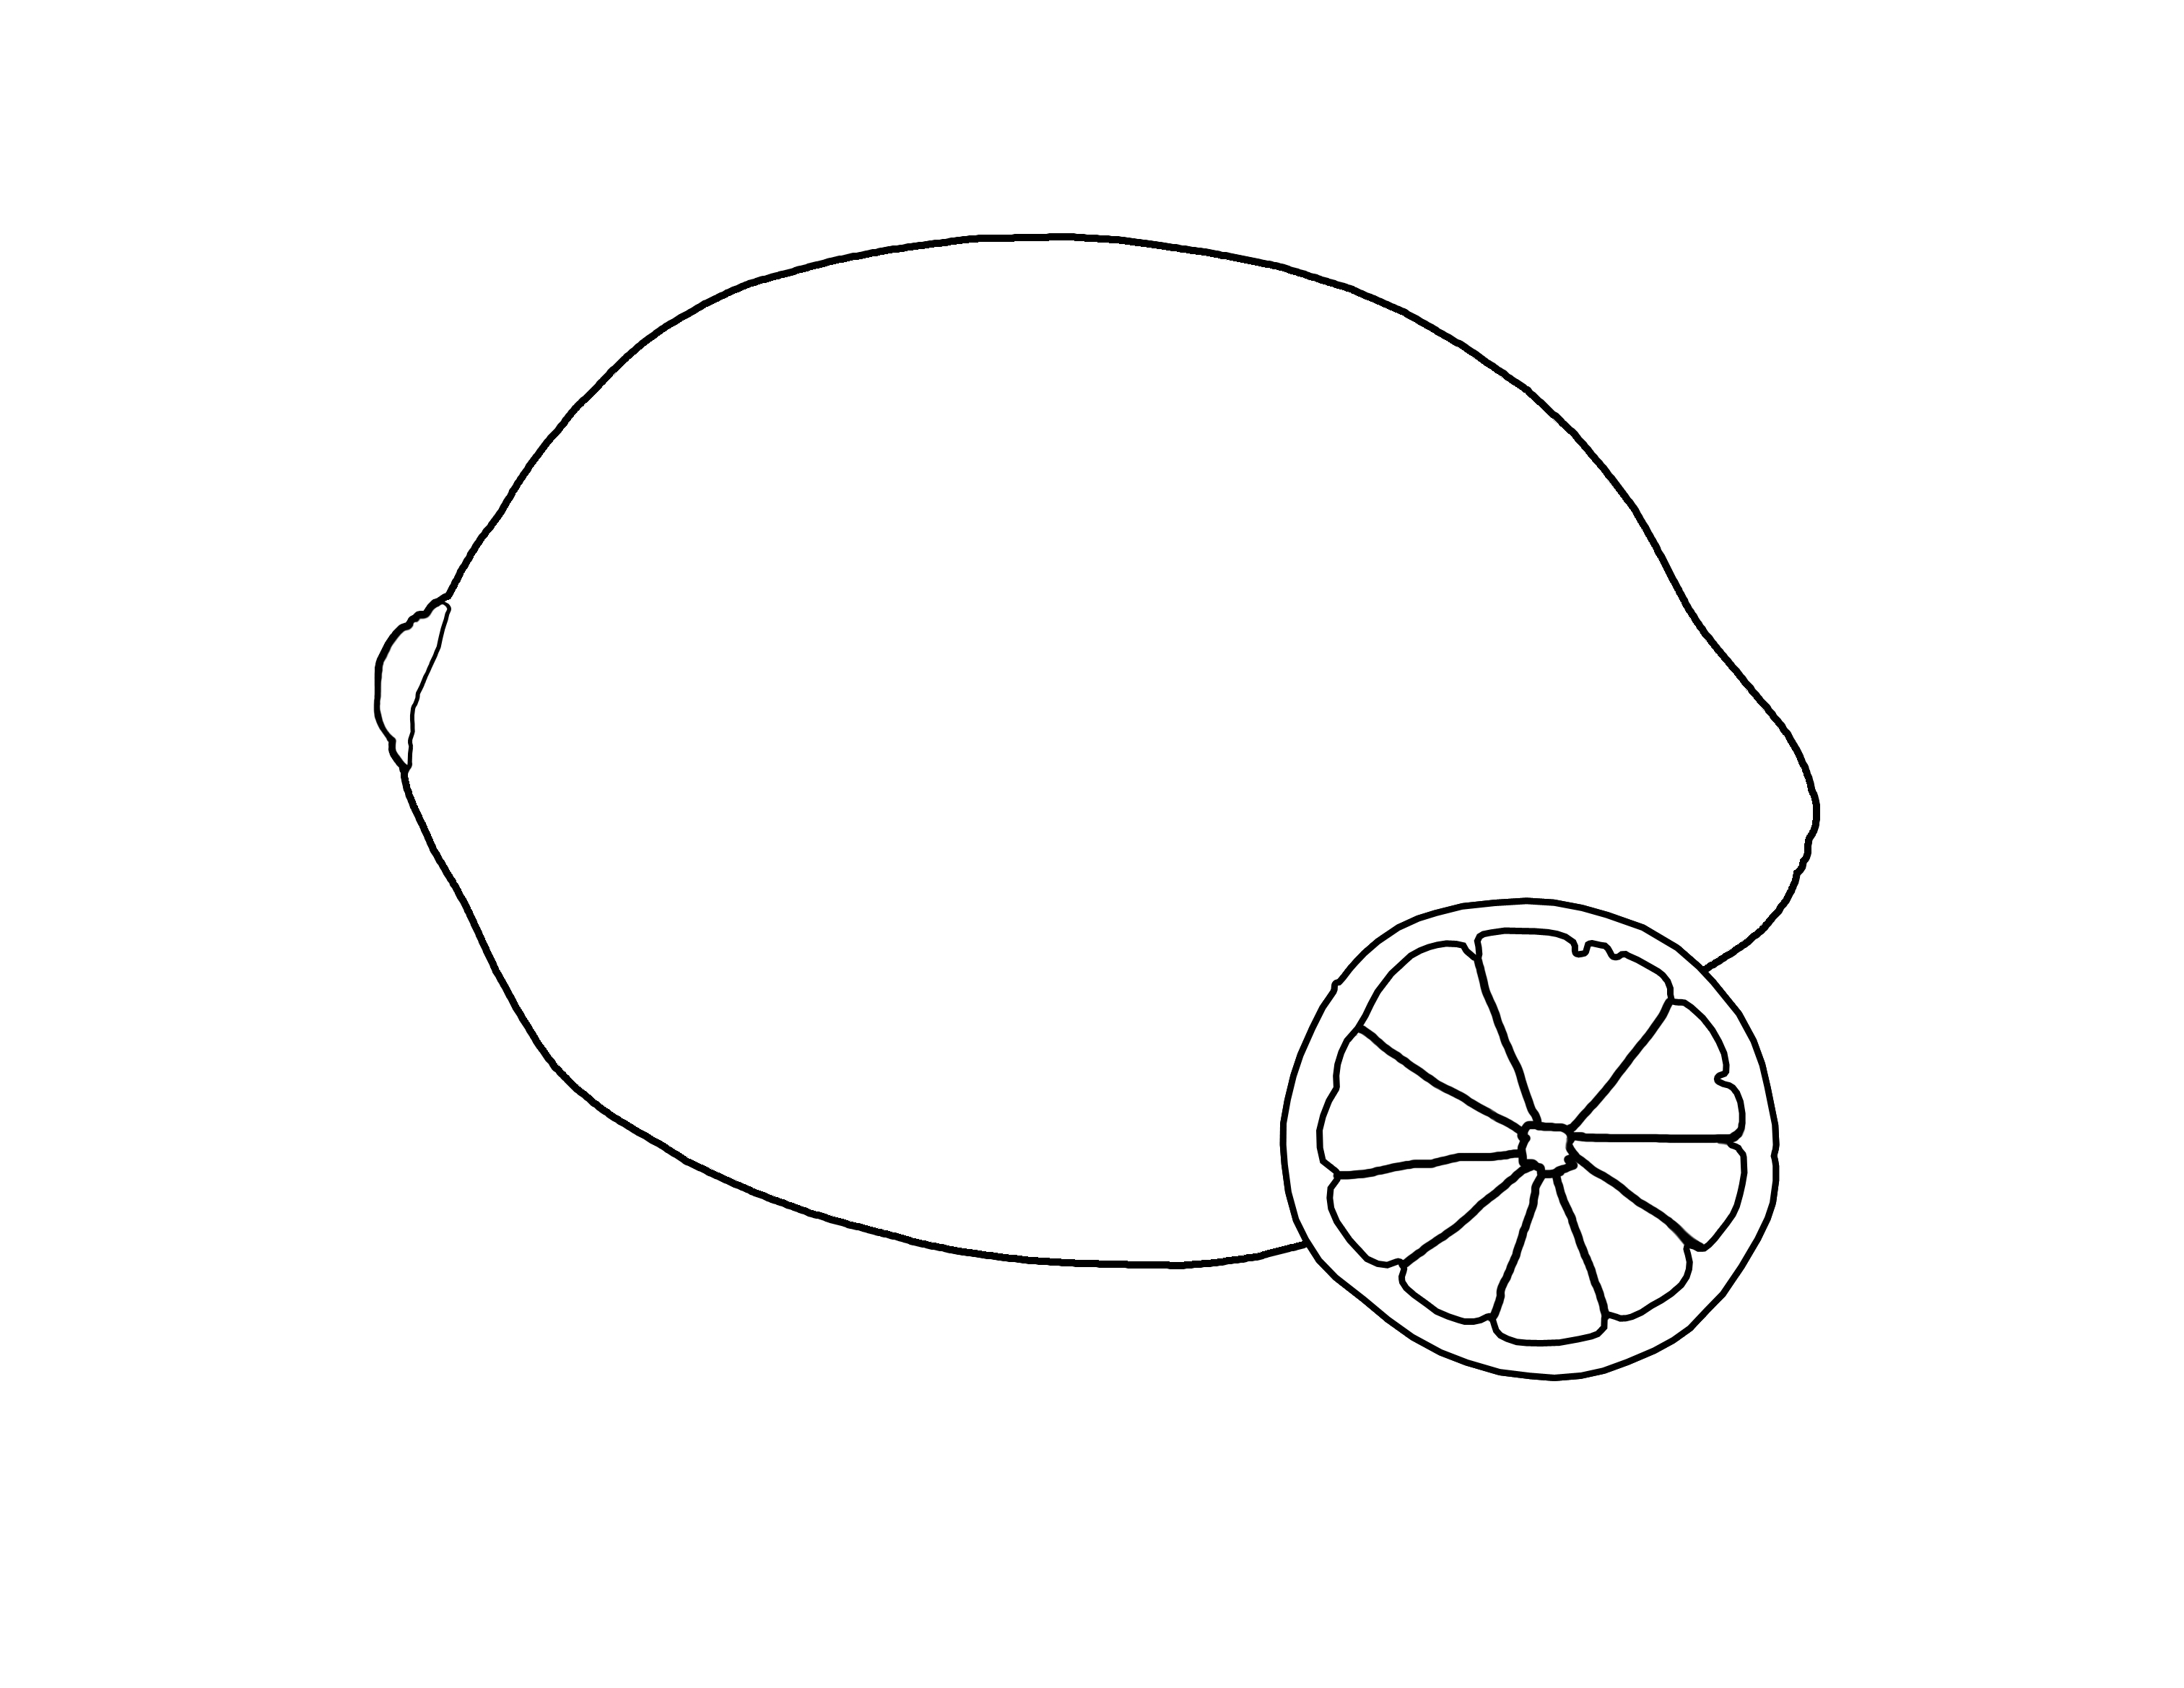 It is a graphic of Peaceful Lemon Coloring Page